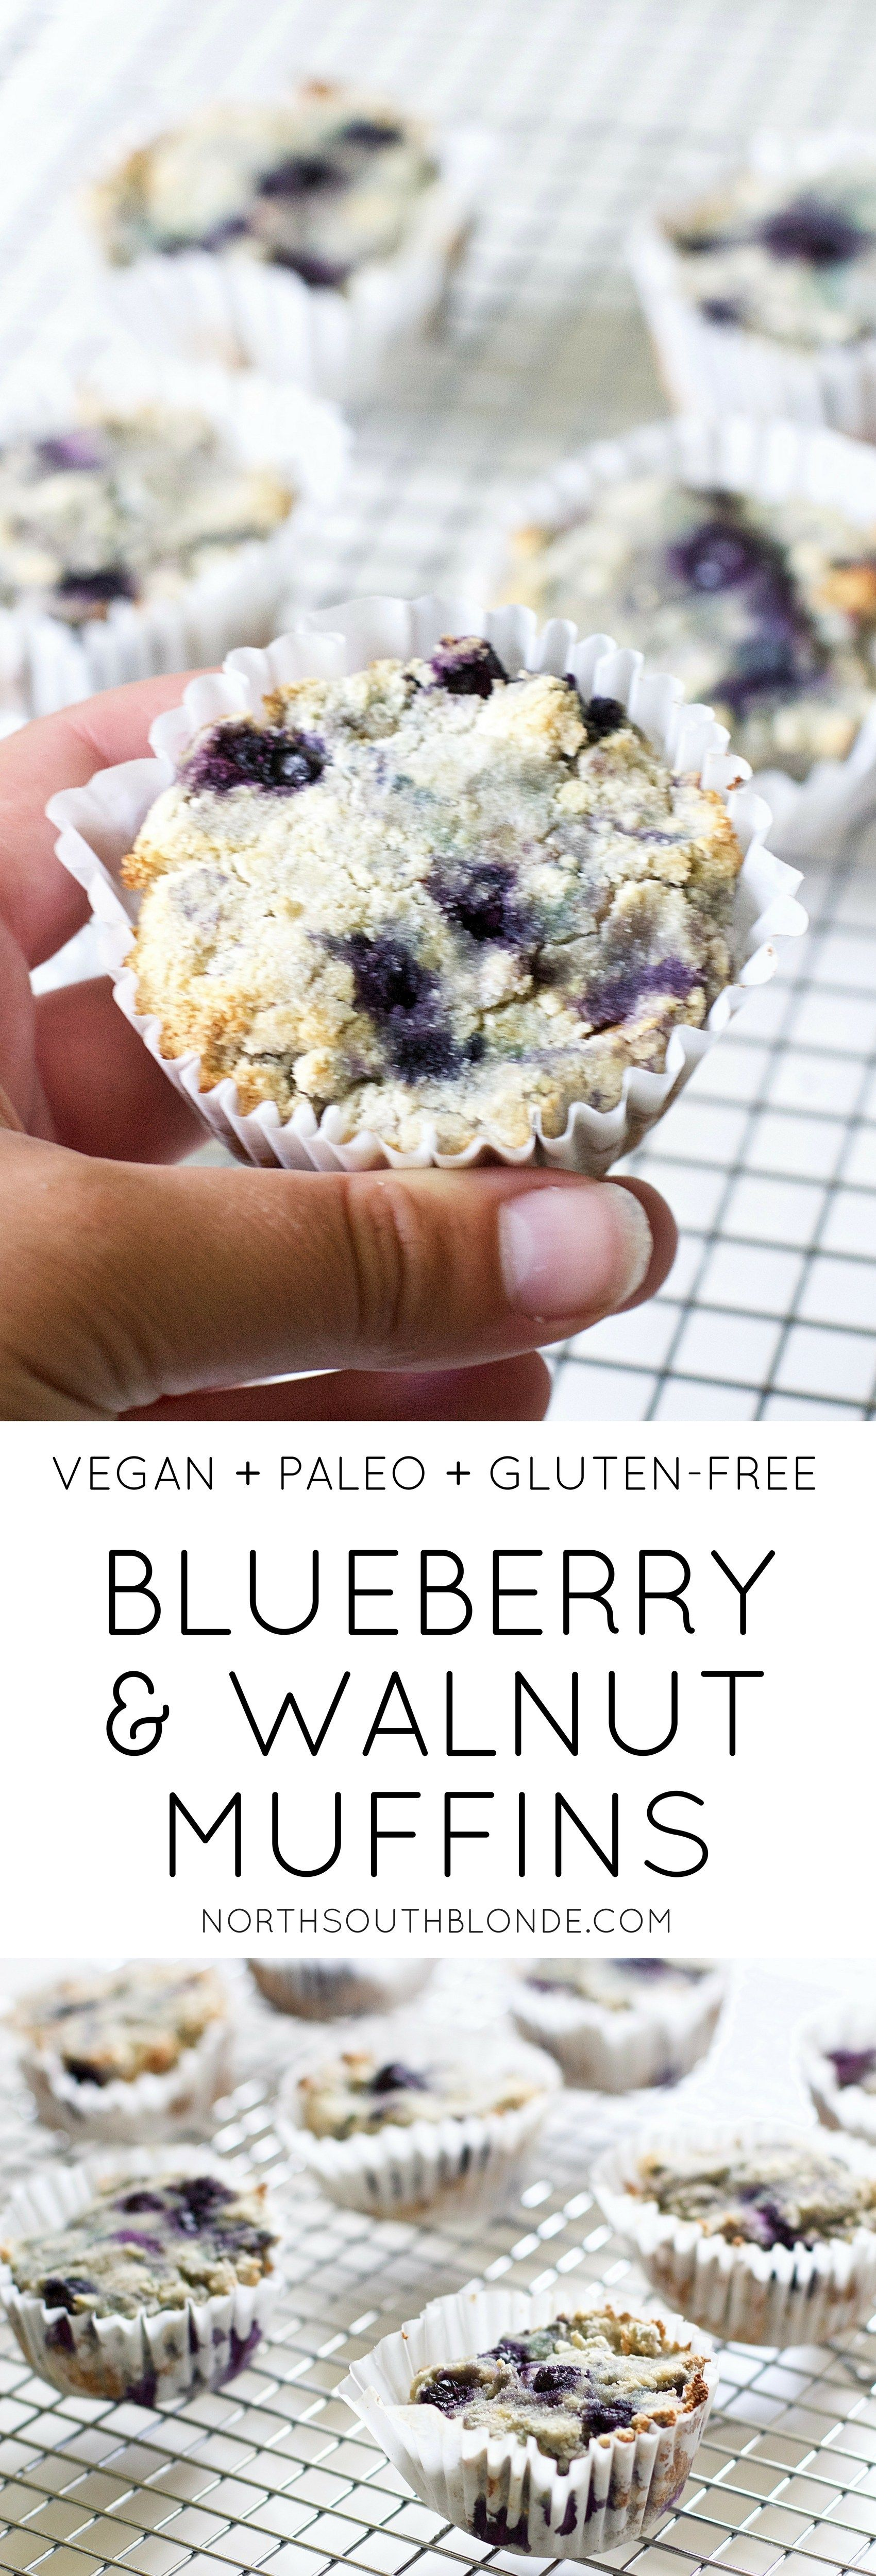 Deliciously soft & crunchy with an explosion of flavour. A healthy breakfast snack that's low in carbs and high in nutrients for weight loss. Save money every morning by warming one up and go! Paleo Muffins | Blueberry Muffins | Weight Loss | Low Carb | Low Fat | Skinny | Light & Healthy | Breakfast Muffins | Paleo Breakfast | Vegan Breakfast | Vegan Muffins | Easy Recipes | Gluten-Free Muffins | Gluten-free Breakfast | Dairy Free | Sugar Free | Grain Free